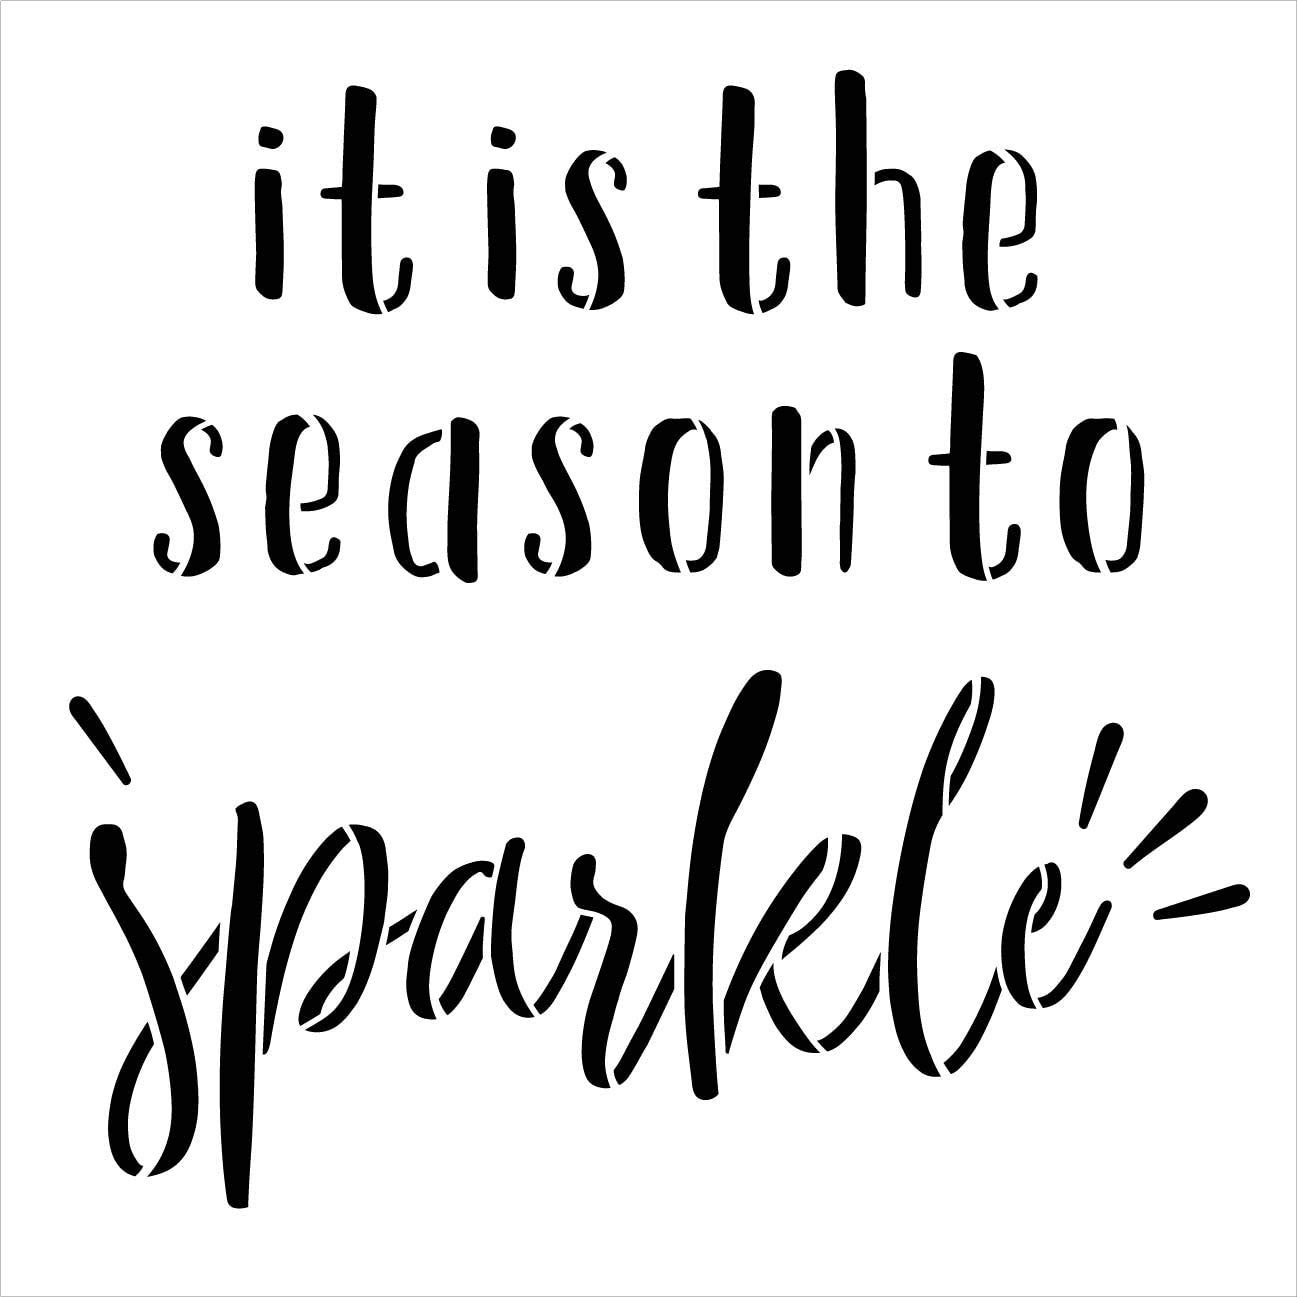 Season to Sparkle Stencil by StudioR12 | DIY Christmas Holiday Home Decor | Craft & Paint Wood Sign | Reusable Mylar Template | Bright Winter Cursive Script Gift | Select Size